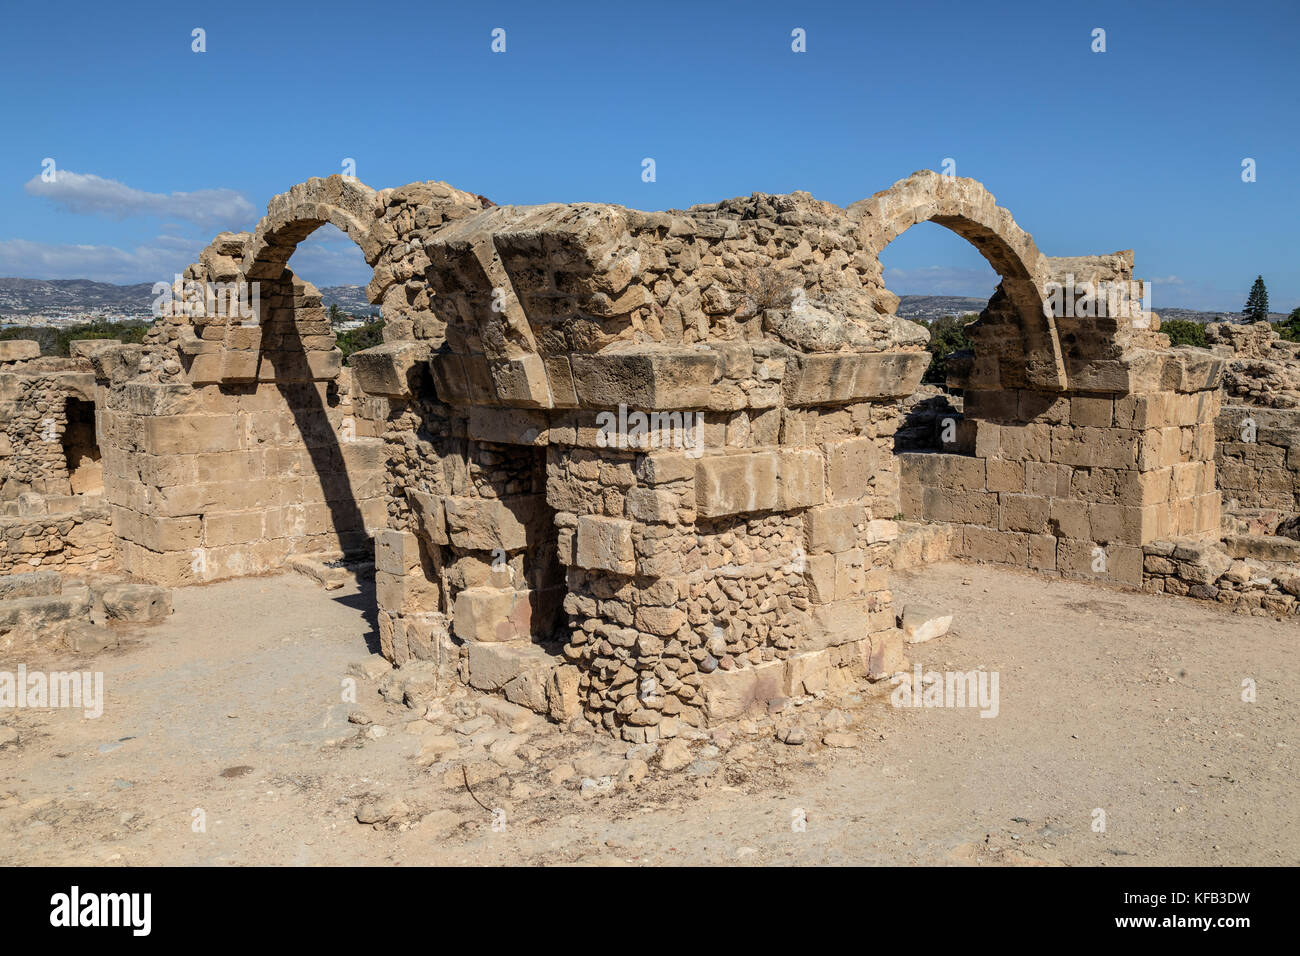 Paphos Archaeological Park, Paphos, Cyprus - Stock Image